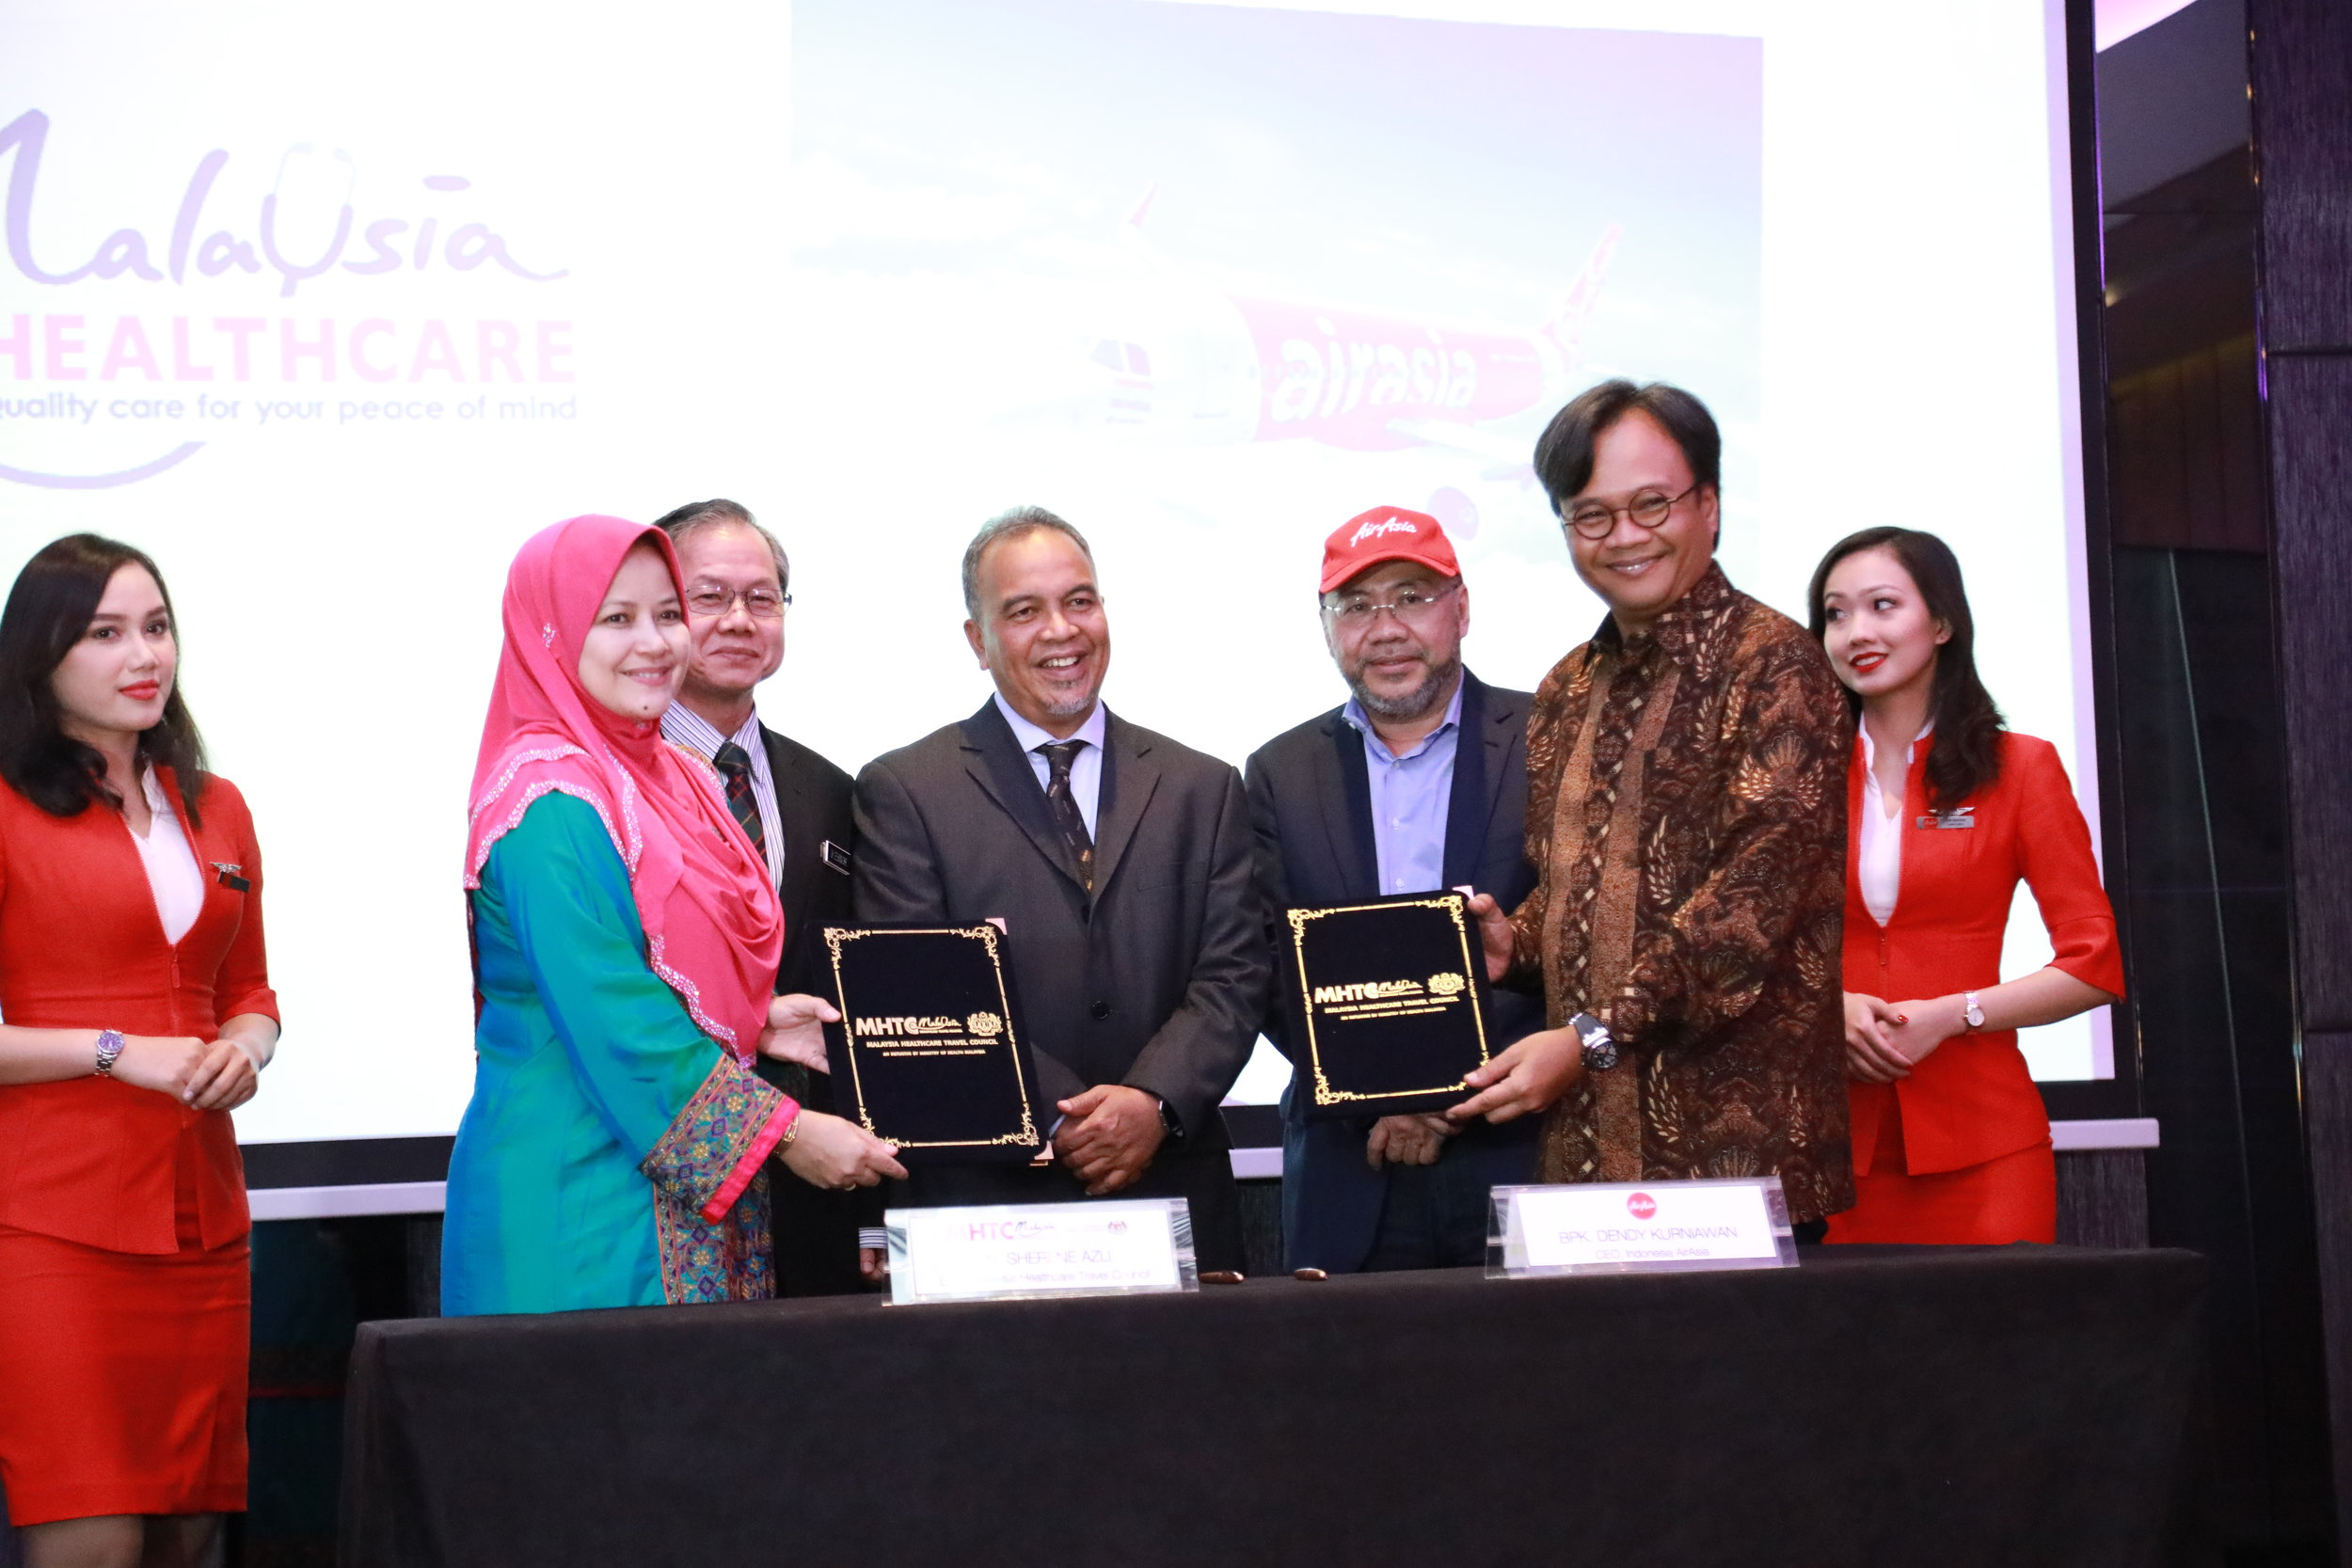 Memorandum of Understanding (MOU) between Malaysia Healthcare Tourism Council (MHTC) and AirAsia to boost medical tourism sector signed between the MHTC CEO, Sherene Azli (second from left) and AirAsia Indonesia CEO, Dendy Kurniawan (second from right), as witnessed by Malaysian Deputy Minister of Health, YB Dr Lee Boon Chye (third from left), Malaysian Deputy Minister of Finance, YB Dato' Ir Haji Amiruddin bin Hamzah (center) and AirAsia Group Berhad Executive Chairman and AirAsia X Co-Group CEO, Datuk Kamarudin Meranun (third from right).